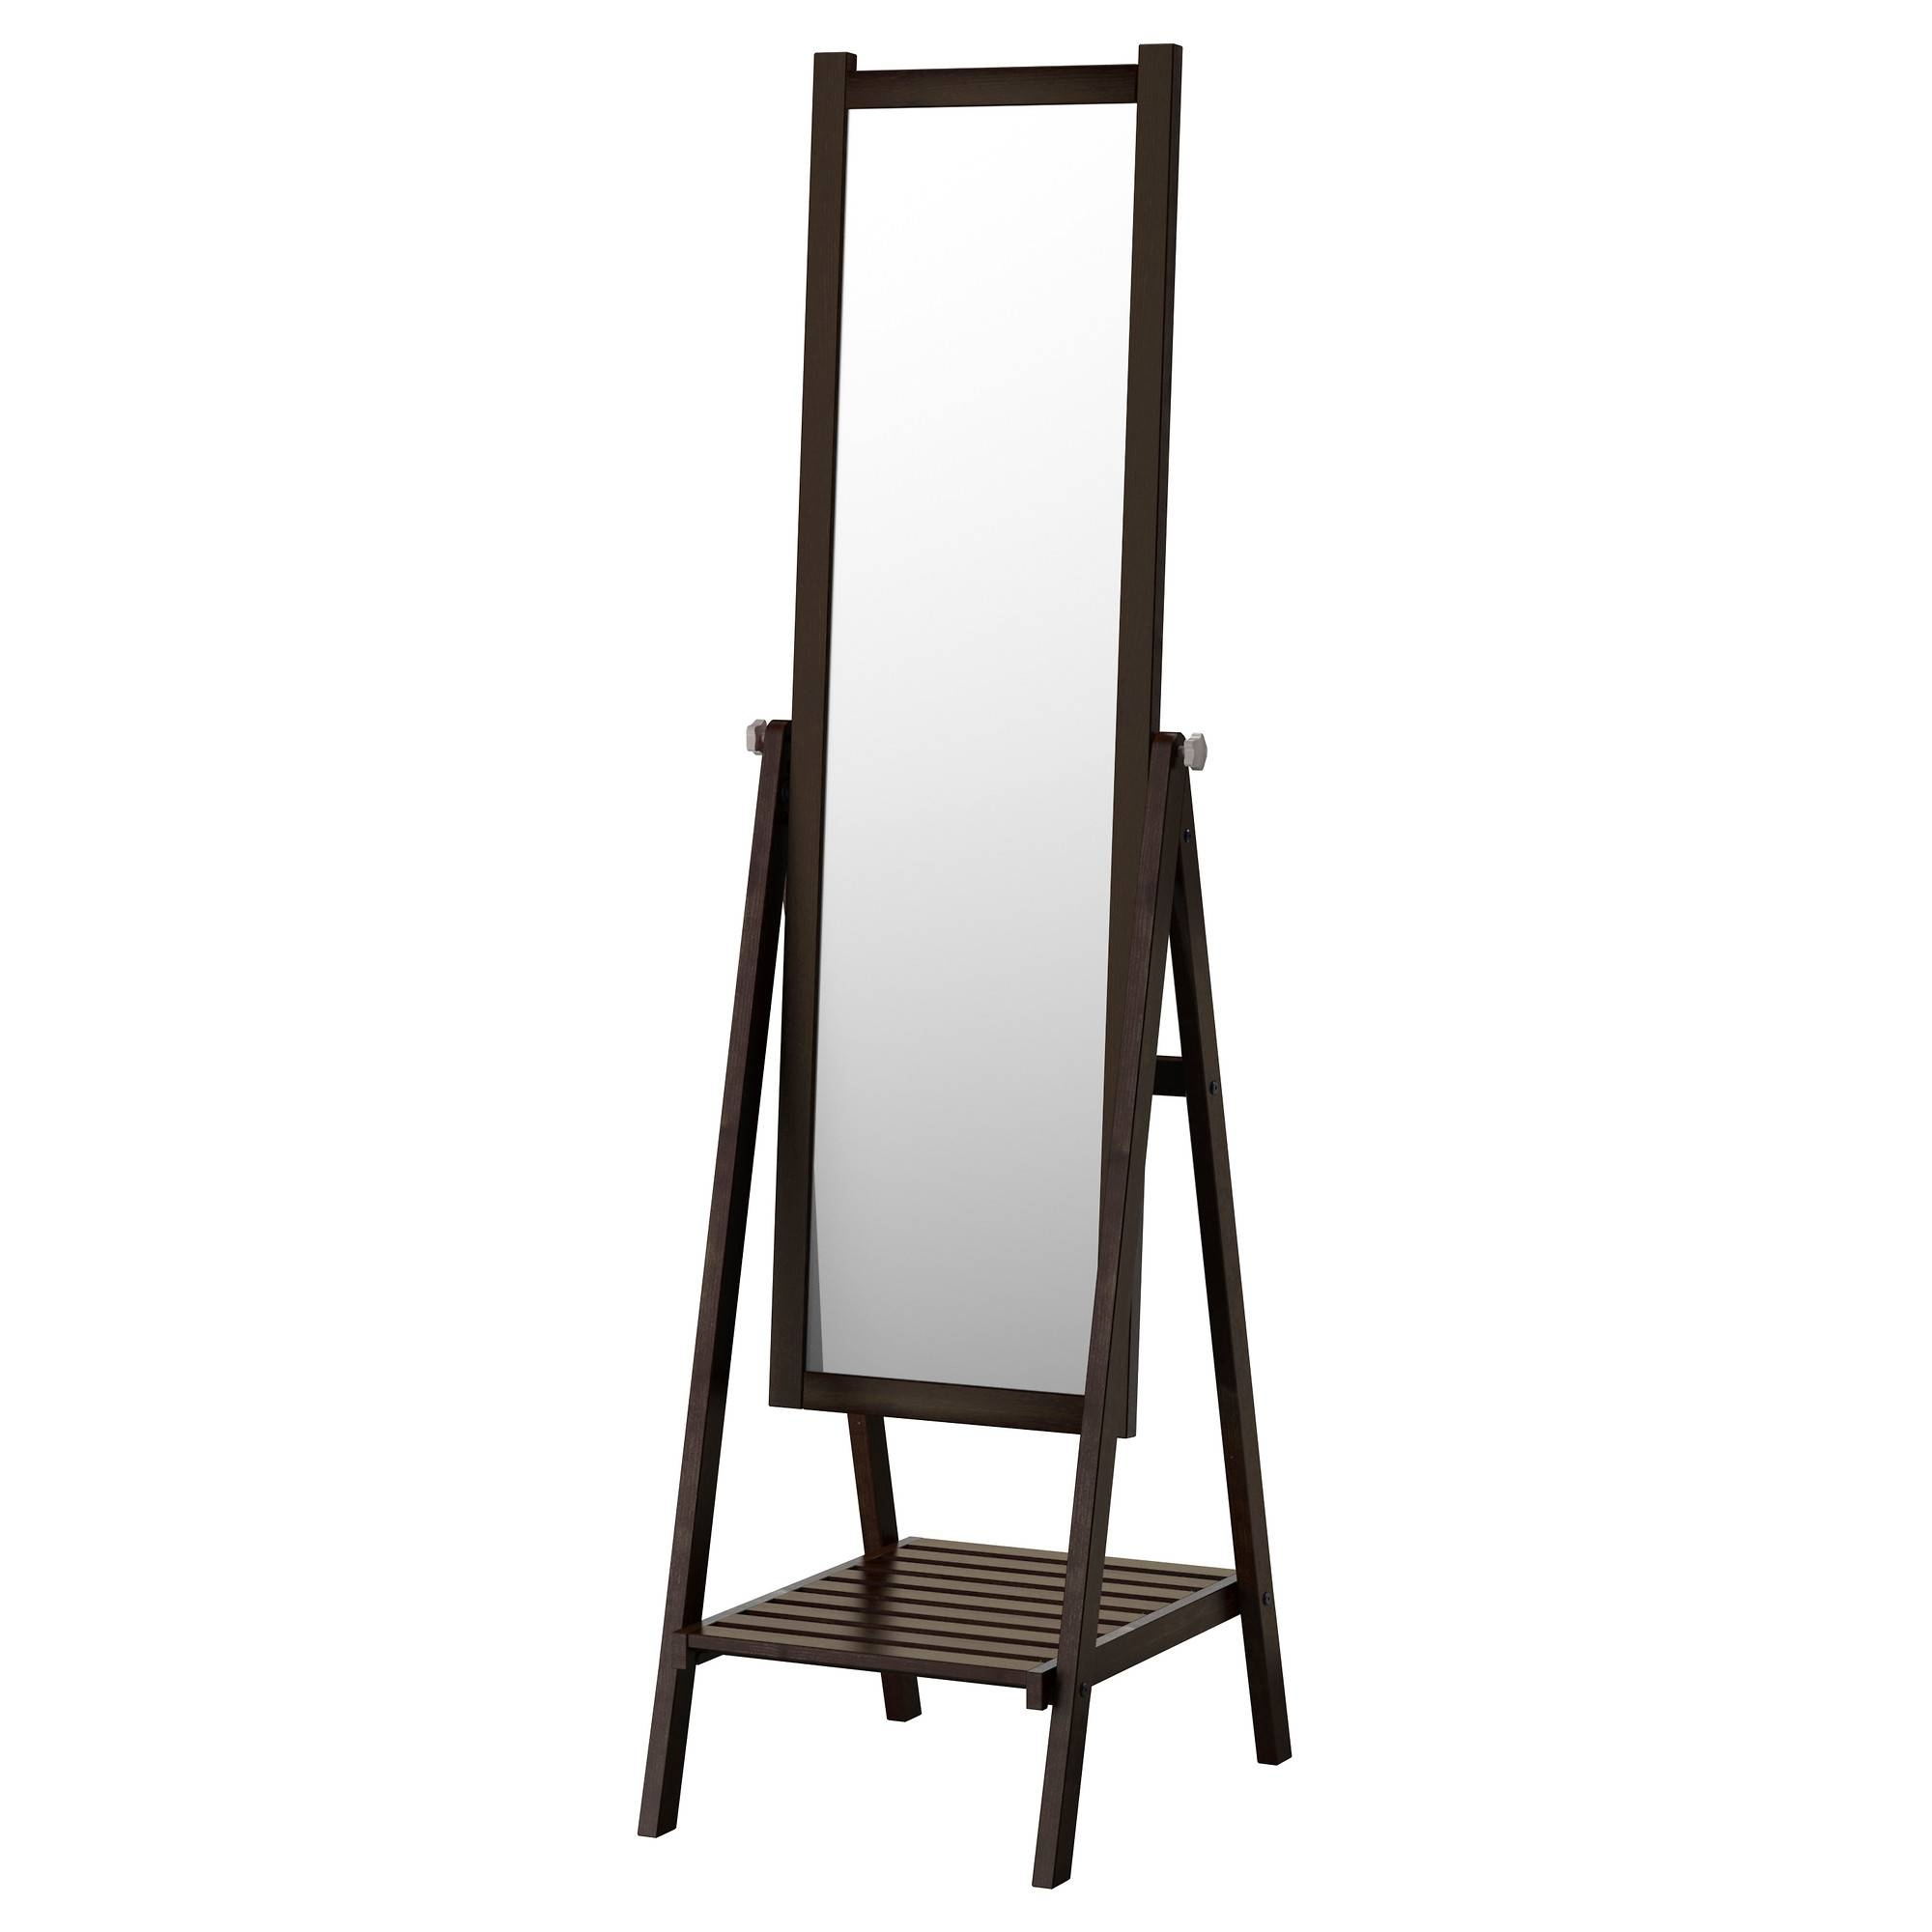 Full-Length Mirrors - Ikea regarding Extra Large Free Standing Mirrors (Image 18 of 25)